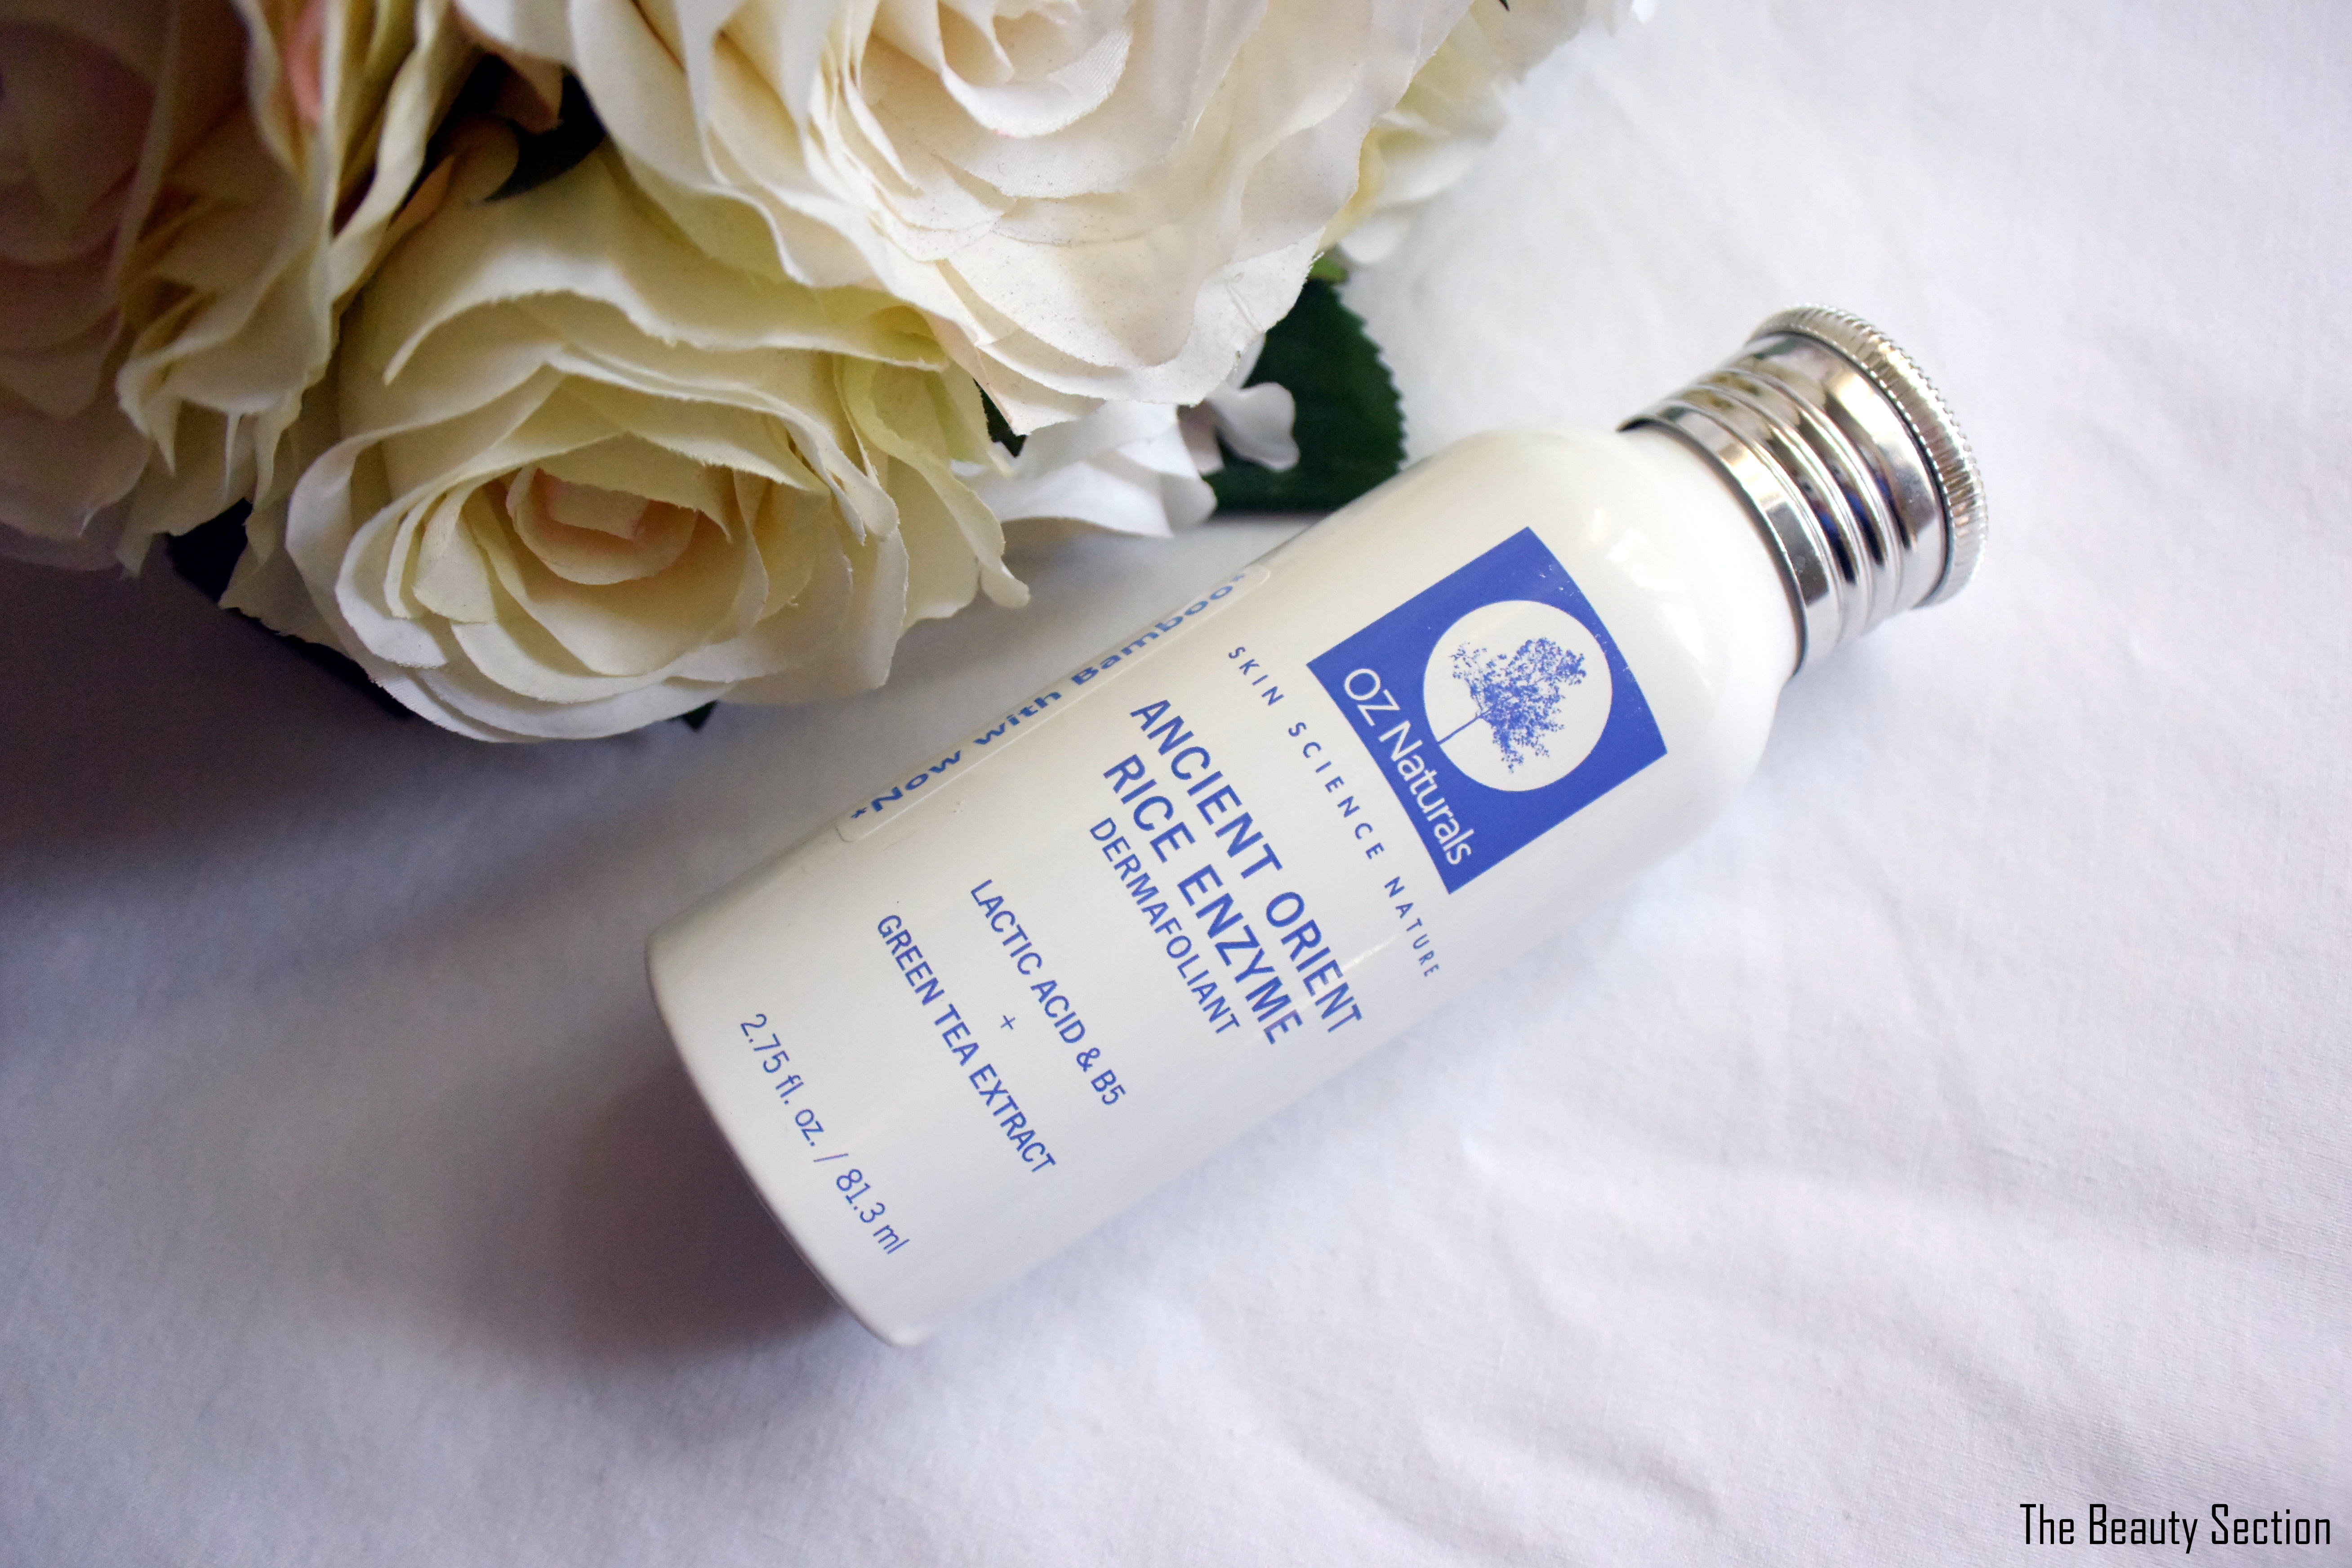 Ancient Orient Rice Enzyme Dermafoliant Review, Great for Sensitive Skin